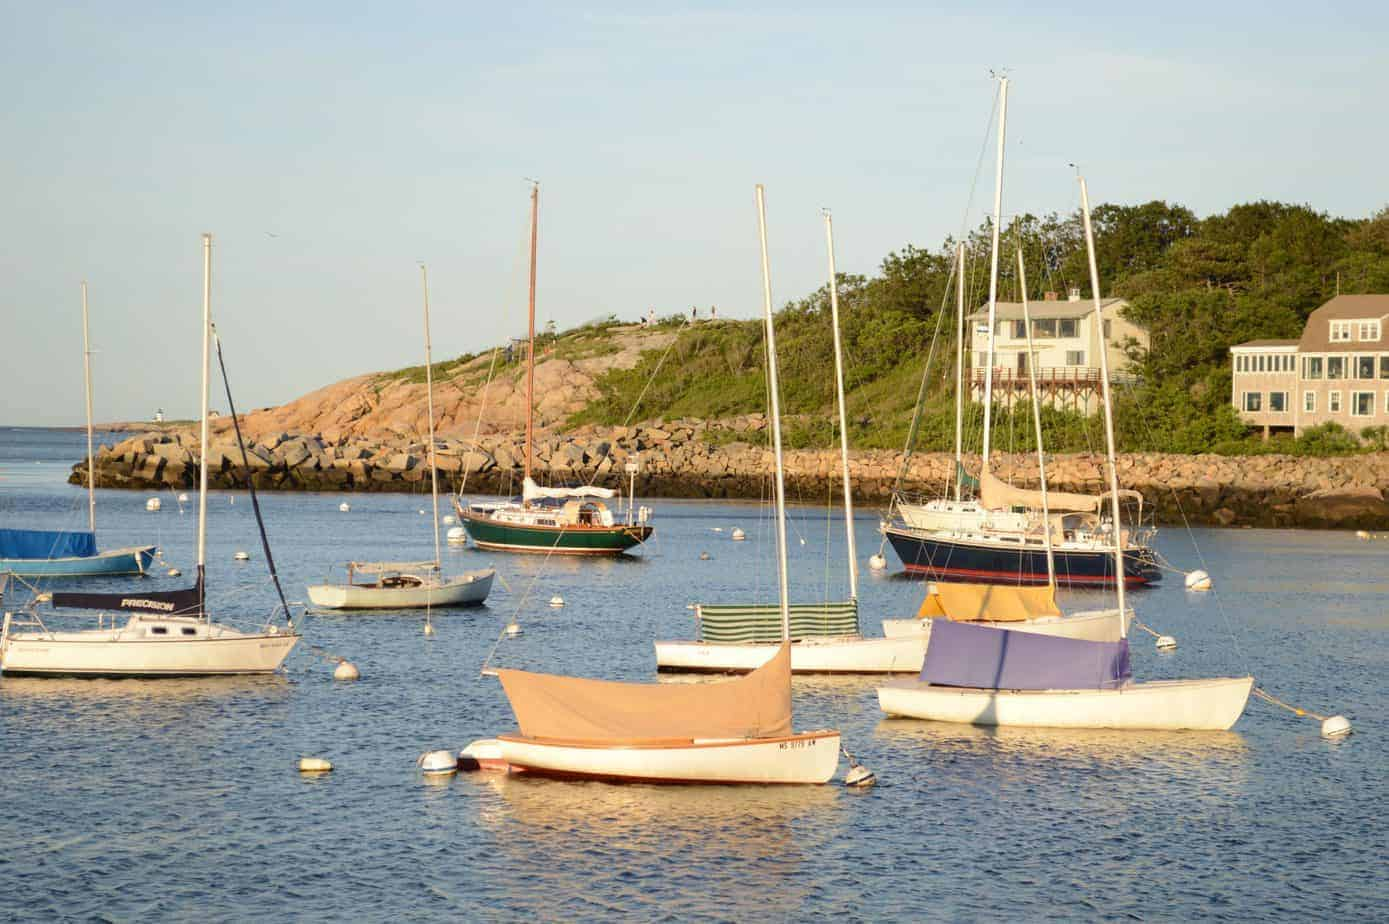 where to stay in rockport ma header image - colorful boats in rockport harbor, sunset golden hour